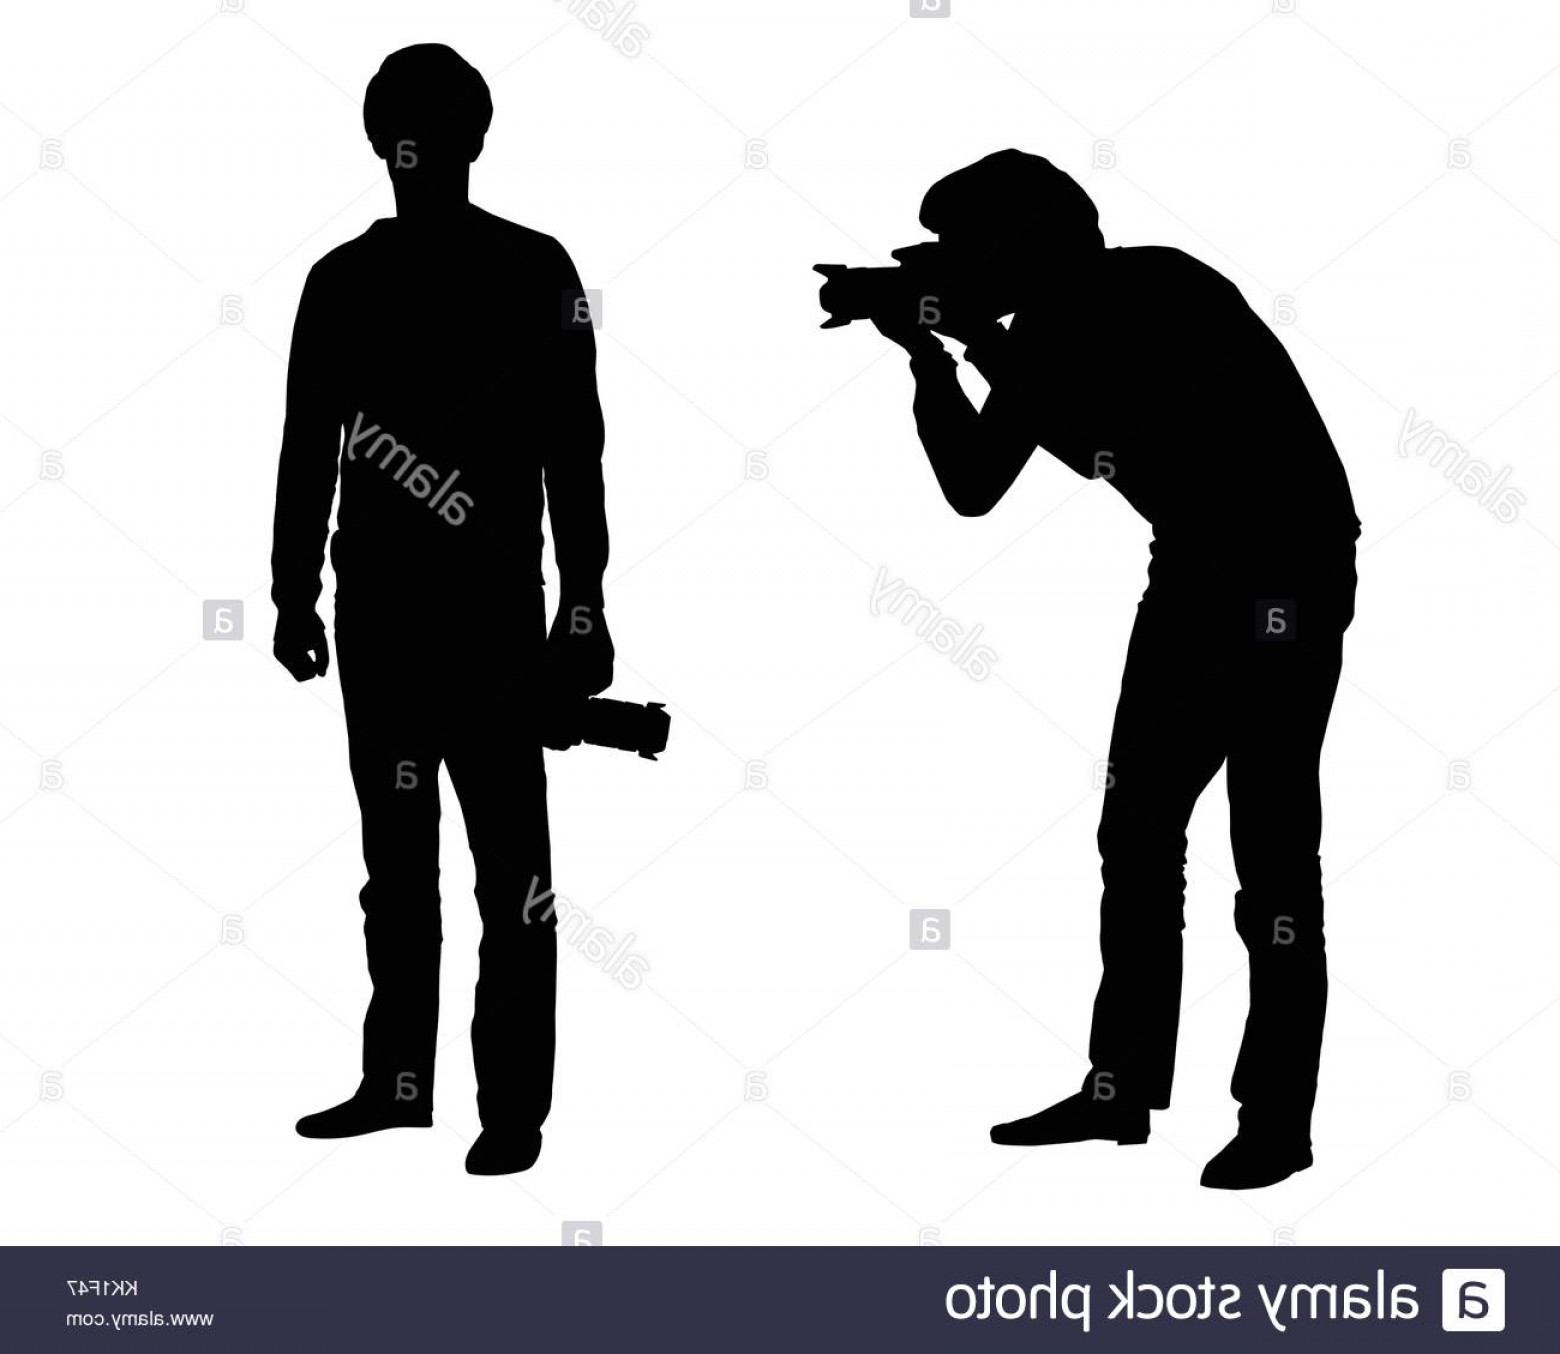 Vector Police Officer Kneeling: Stock Image Set Of Realistic Vector Silhouettes Of Kneeling And Standing Photographer